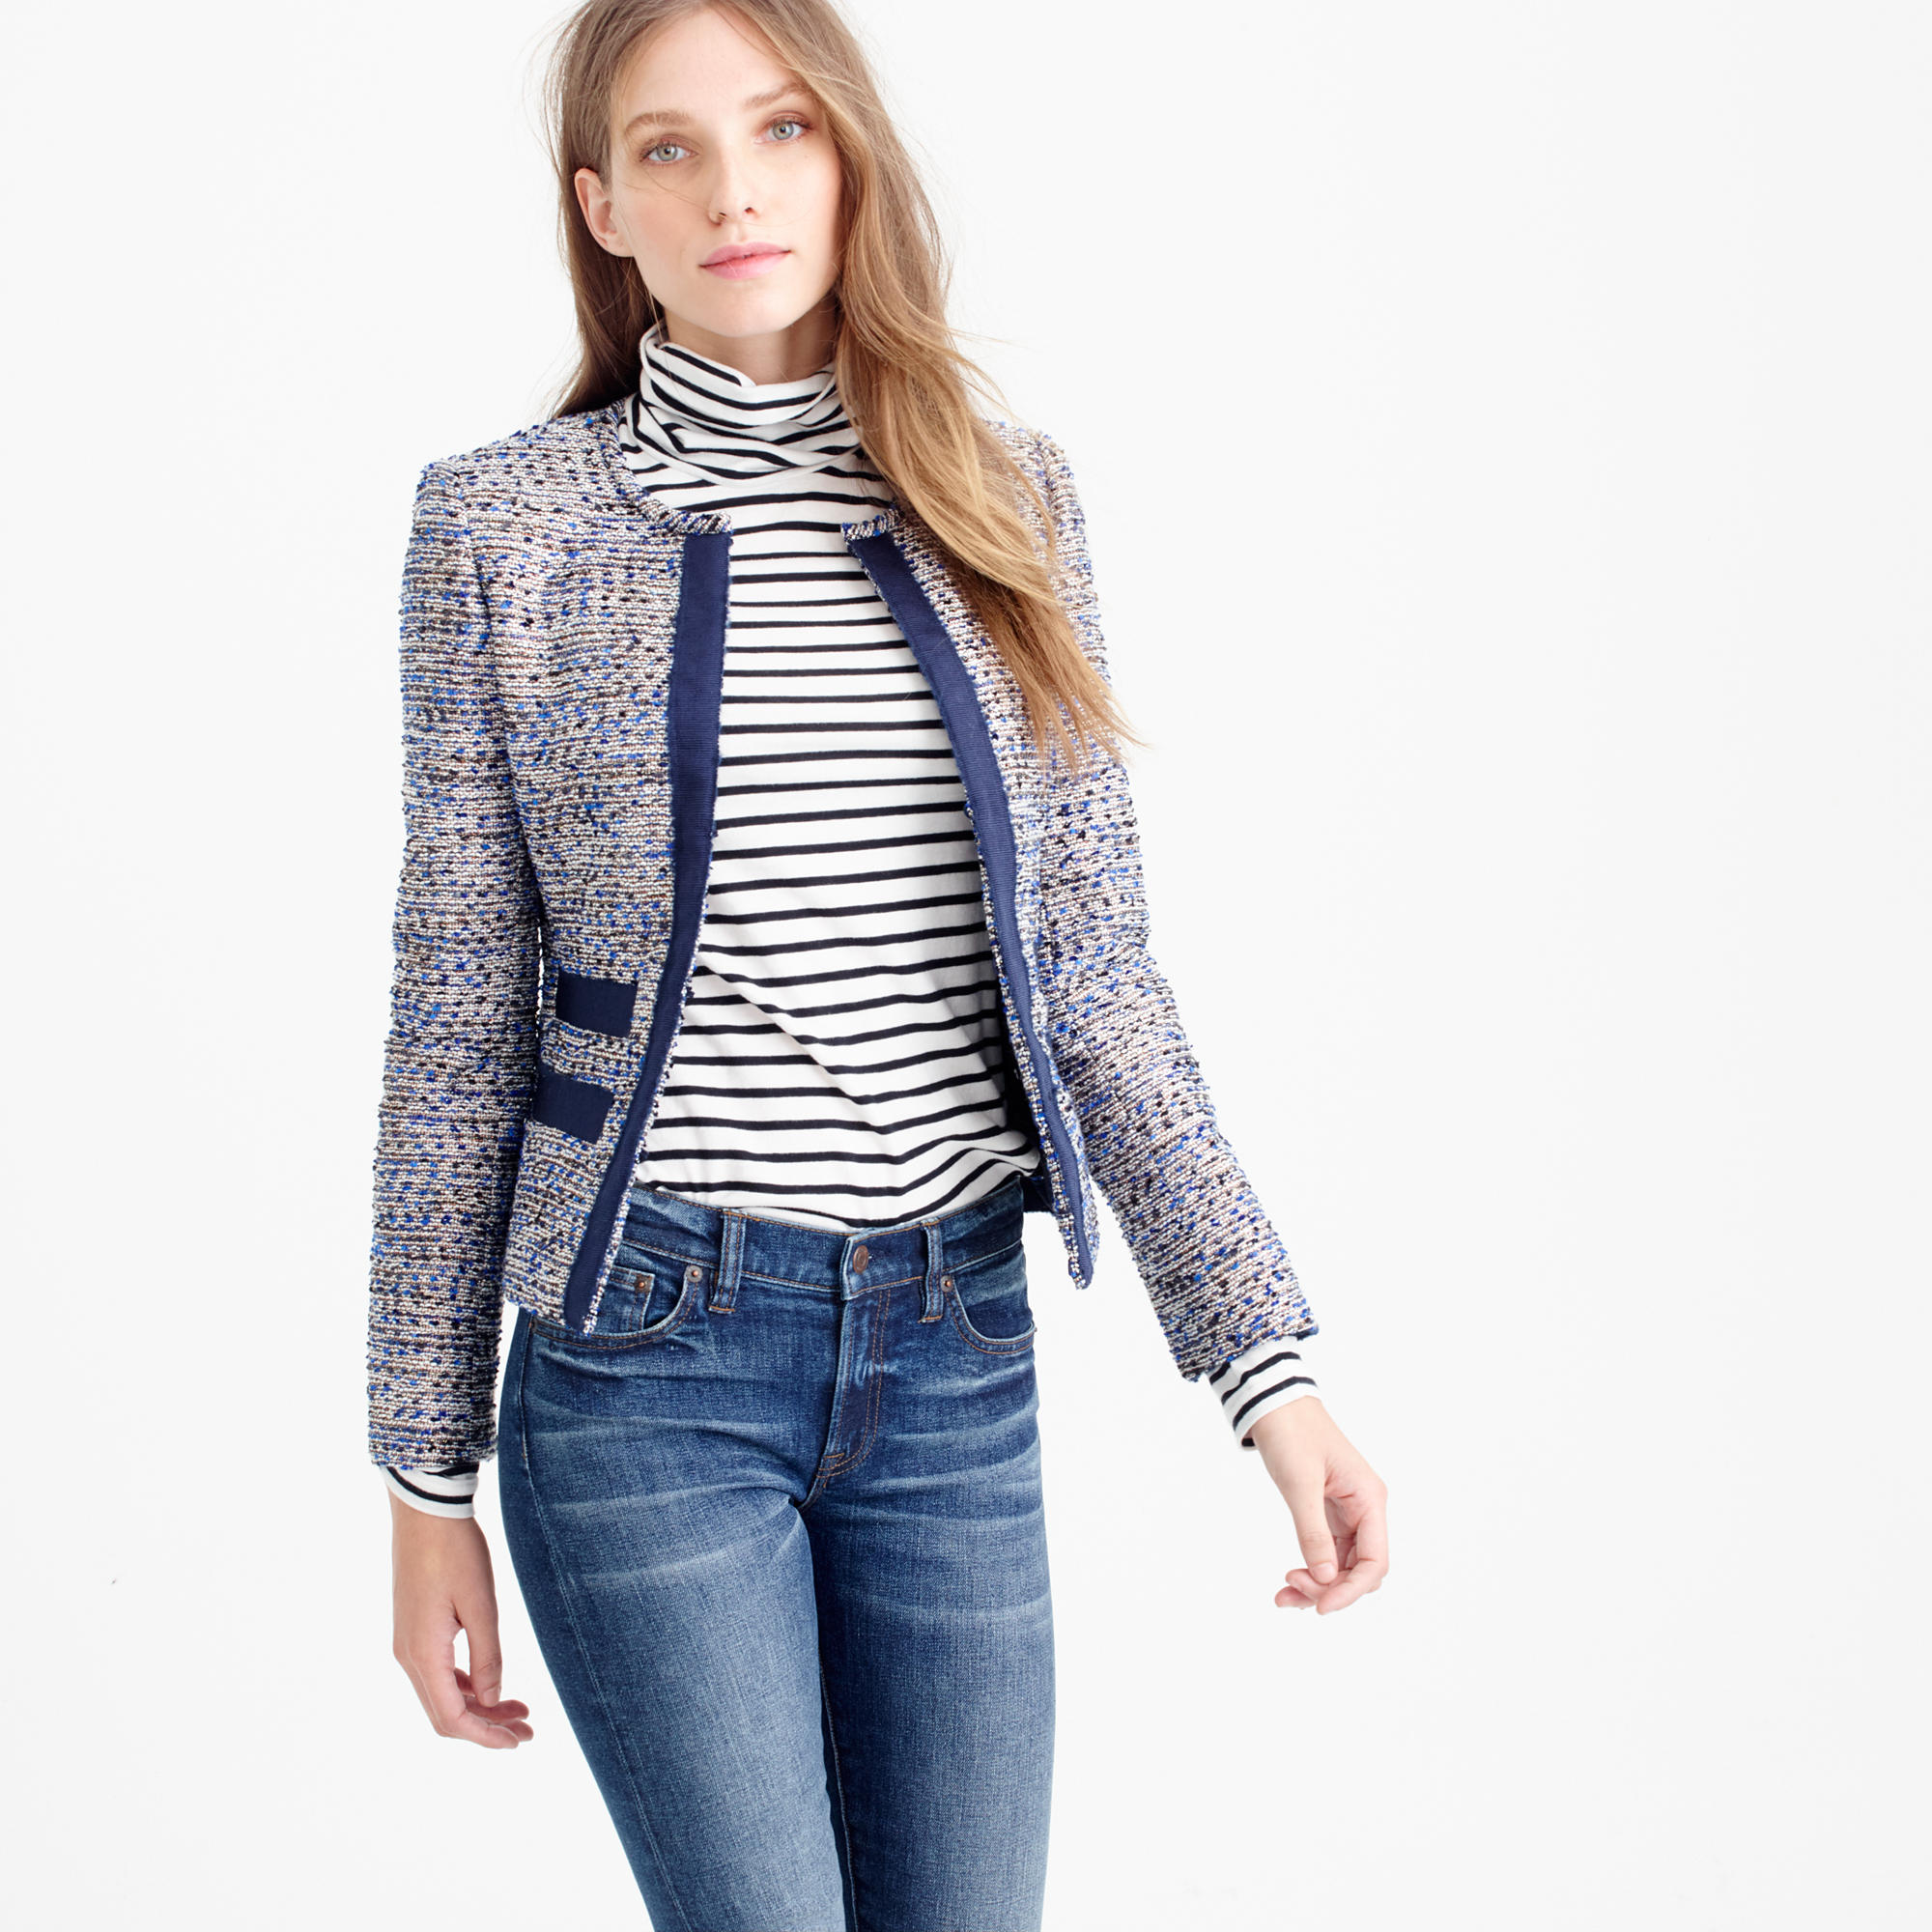 Womens Tweed Blazer Jackets - Best Blazer 2017